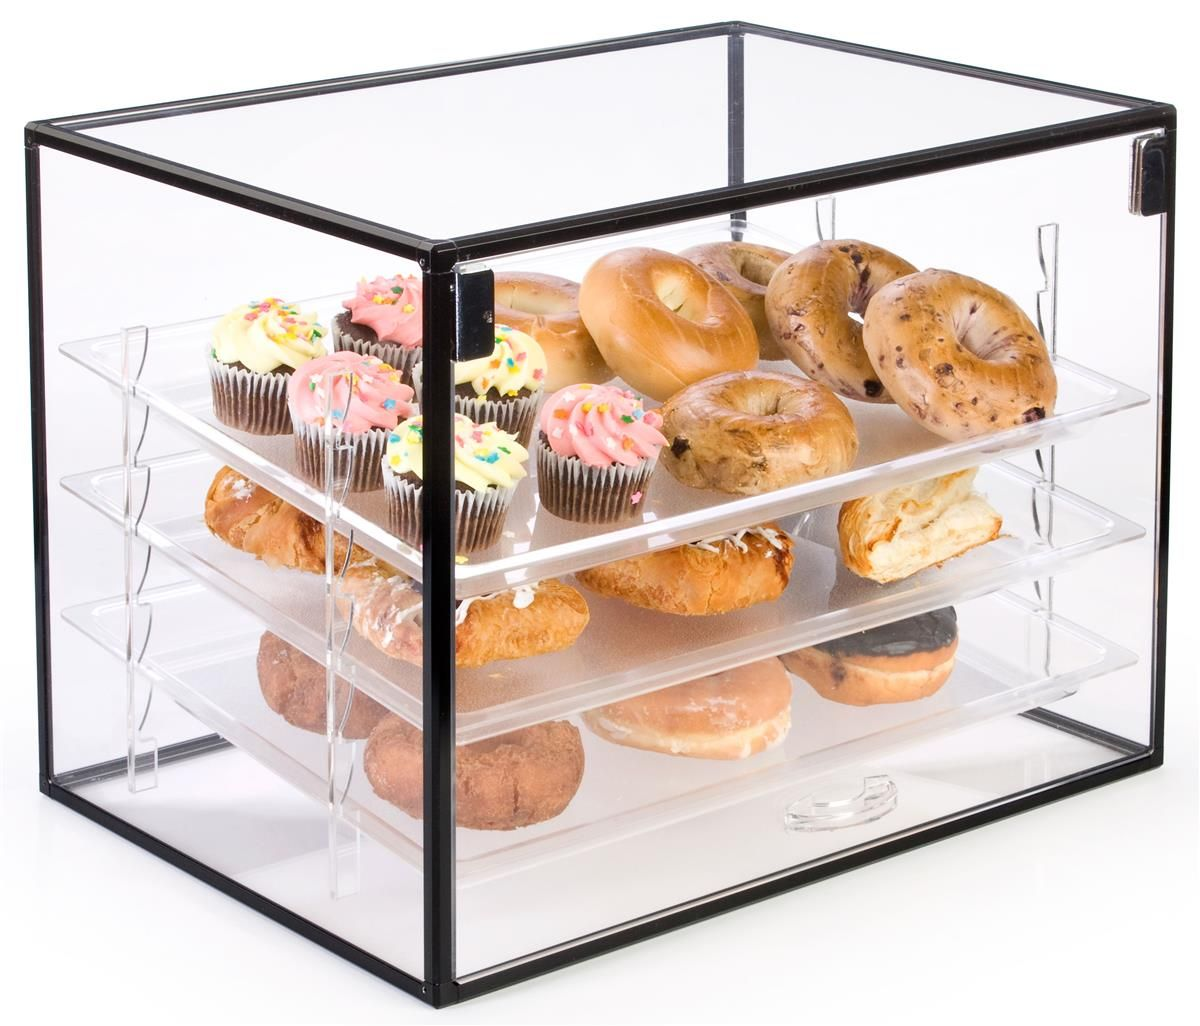 Countertop Food Display Case Acrylic Food Display Case With Three Shelves Included In 2019